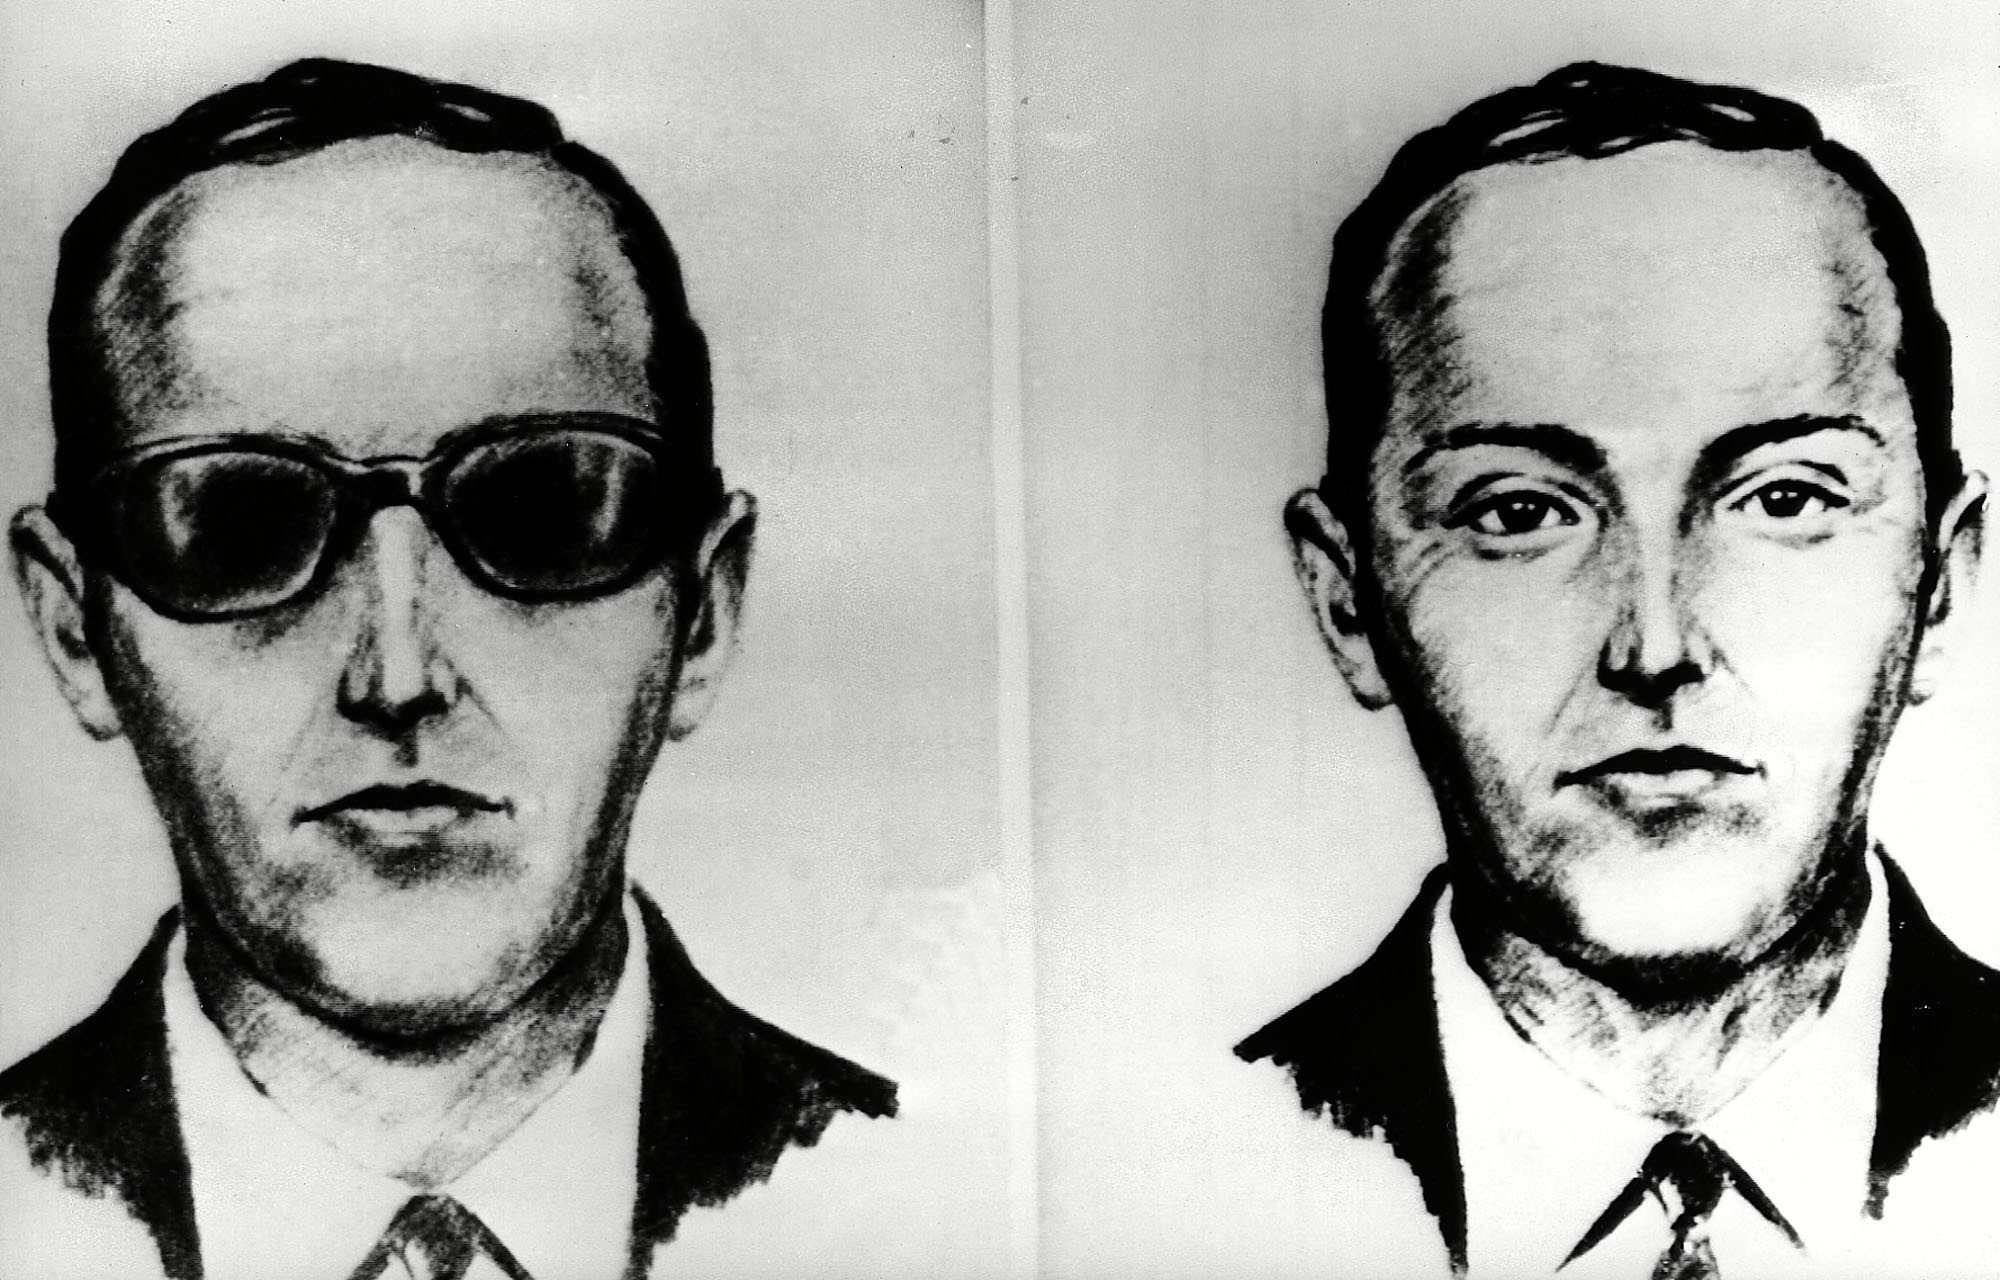 """This undated artist' sketch shows the skyjacker known as D.B. Cooper from recollections of the passengers and crew of a Northwest Airlines jet he hijacked between Portland and Seattle on Thanksgiving eve in 1971. The FBI says it's no longer actively investigating the unsolved mystery of D.B. Cooper. The bureau announced it's """"exhaustively reviewed all credible leads"""" during its 45-year investigation DB Cooper FBI - 12 Jul 2016"""